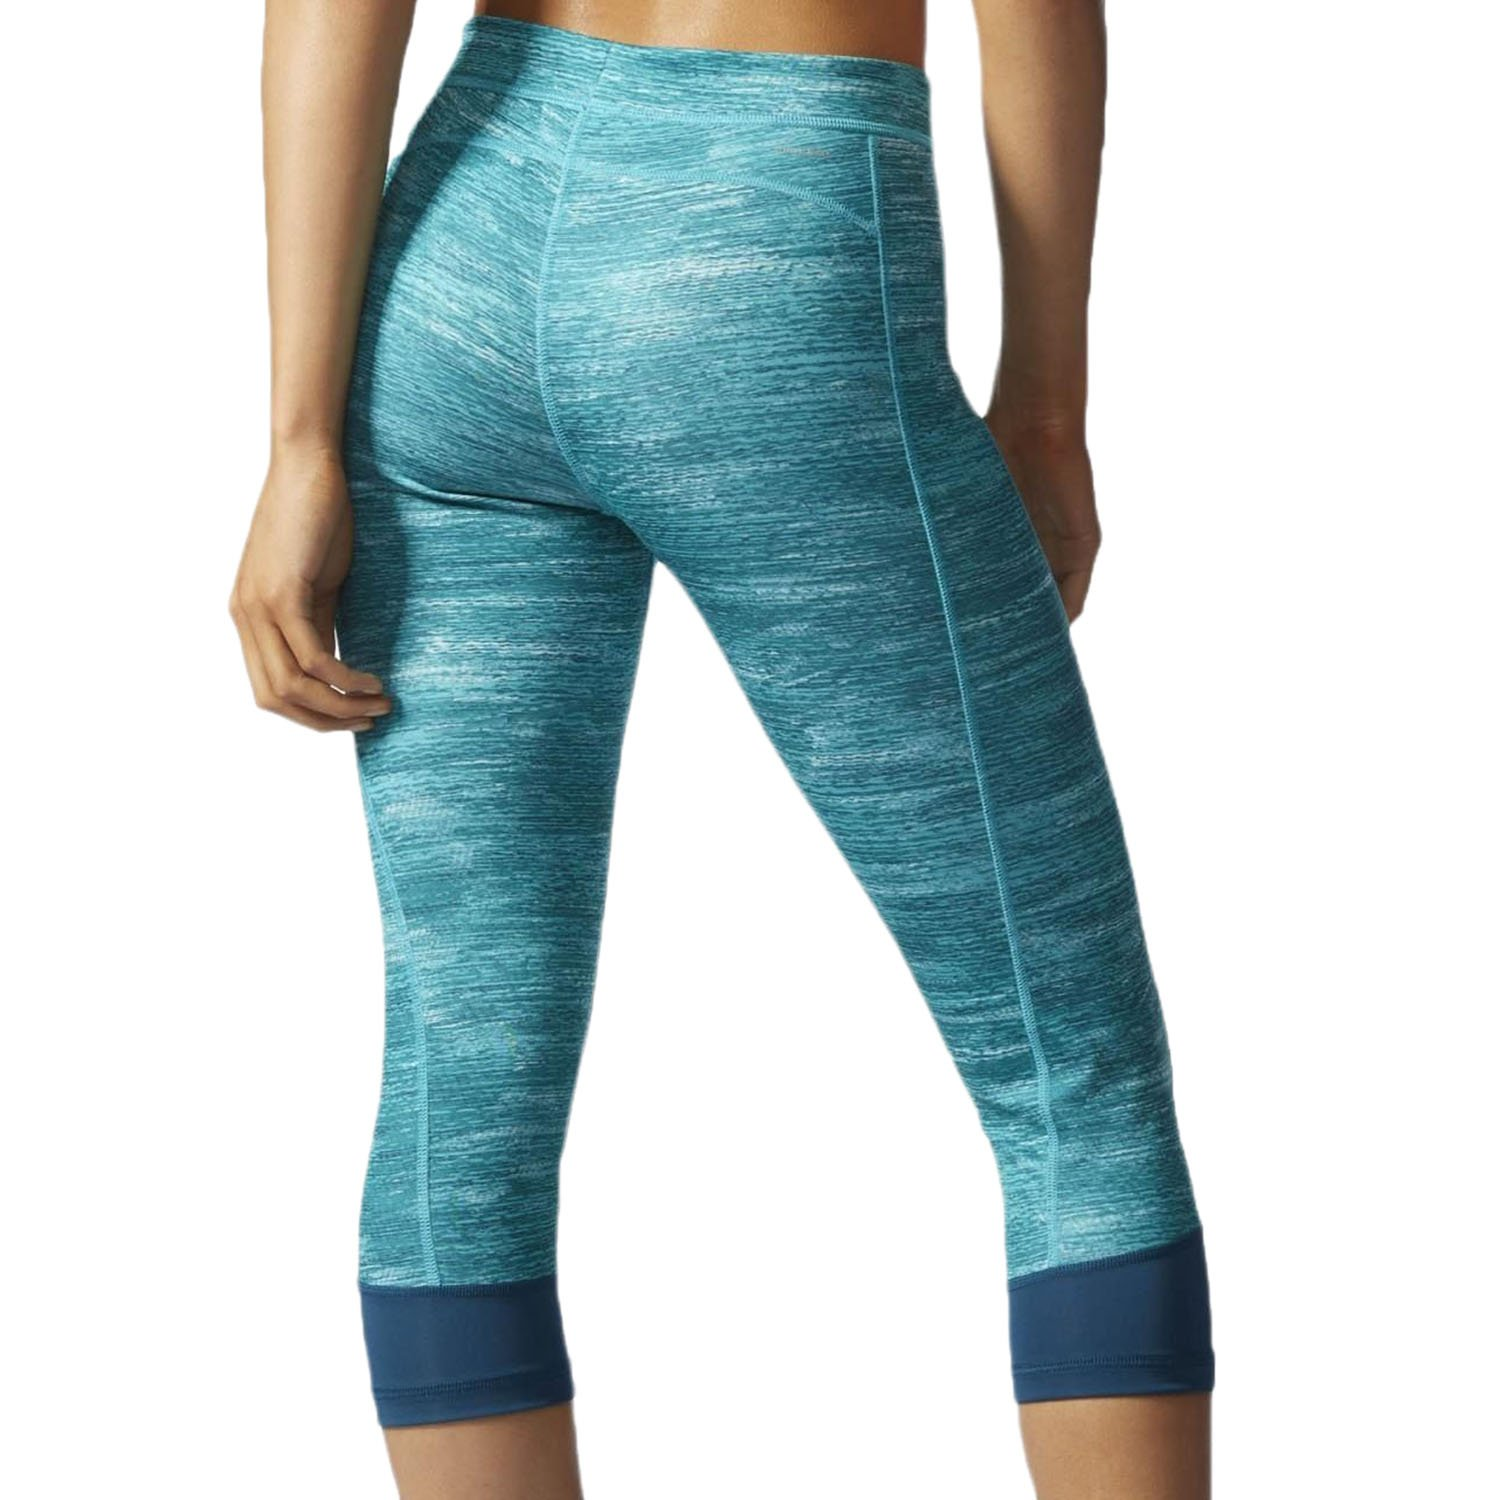 adidas Women's Techfit Capris, Mineral Heather, X-Small by adidas (Image #2)